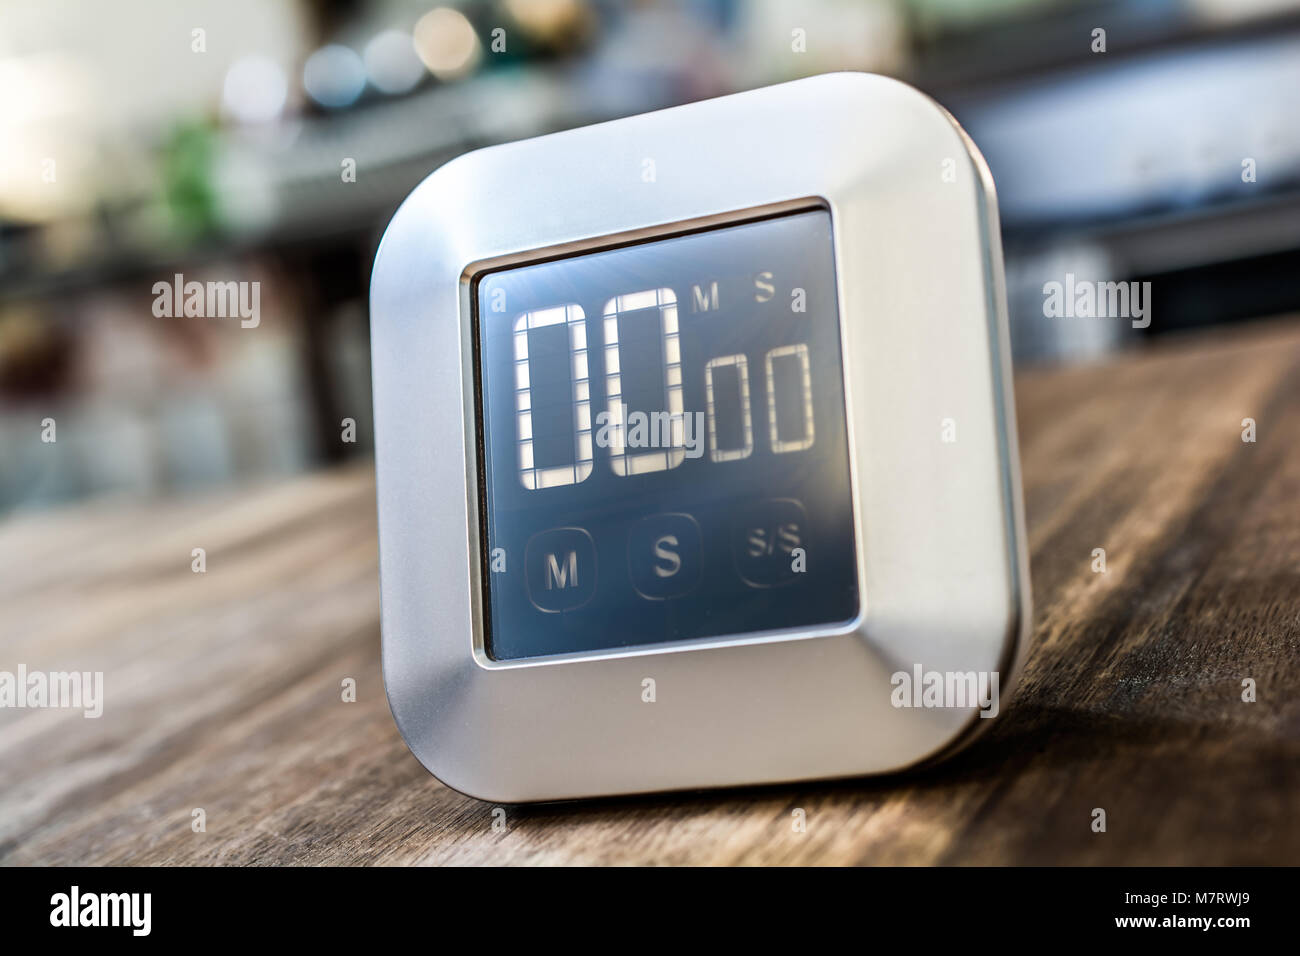 0 Minutes - Closeup Of A Digital Chrome Kitchen Timer On Wooden Table - Stock Image